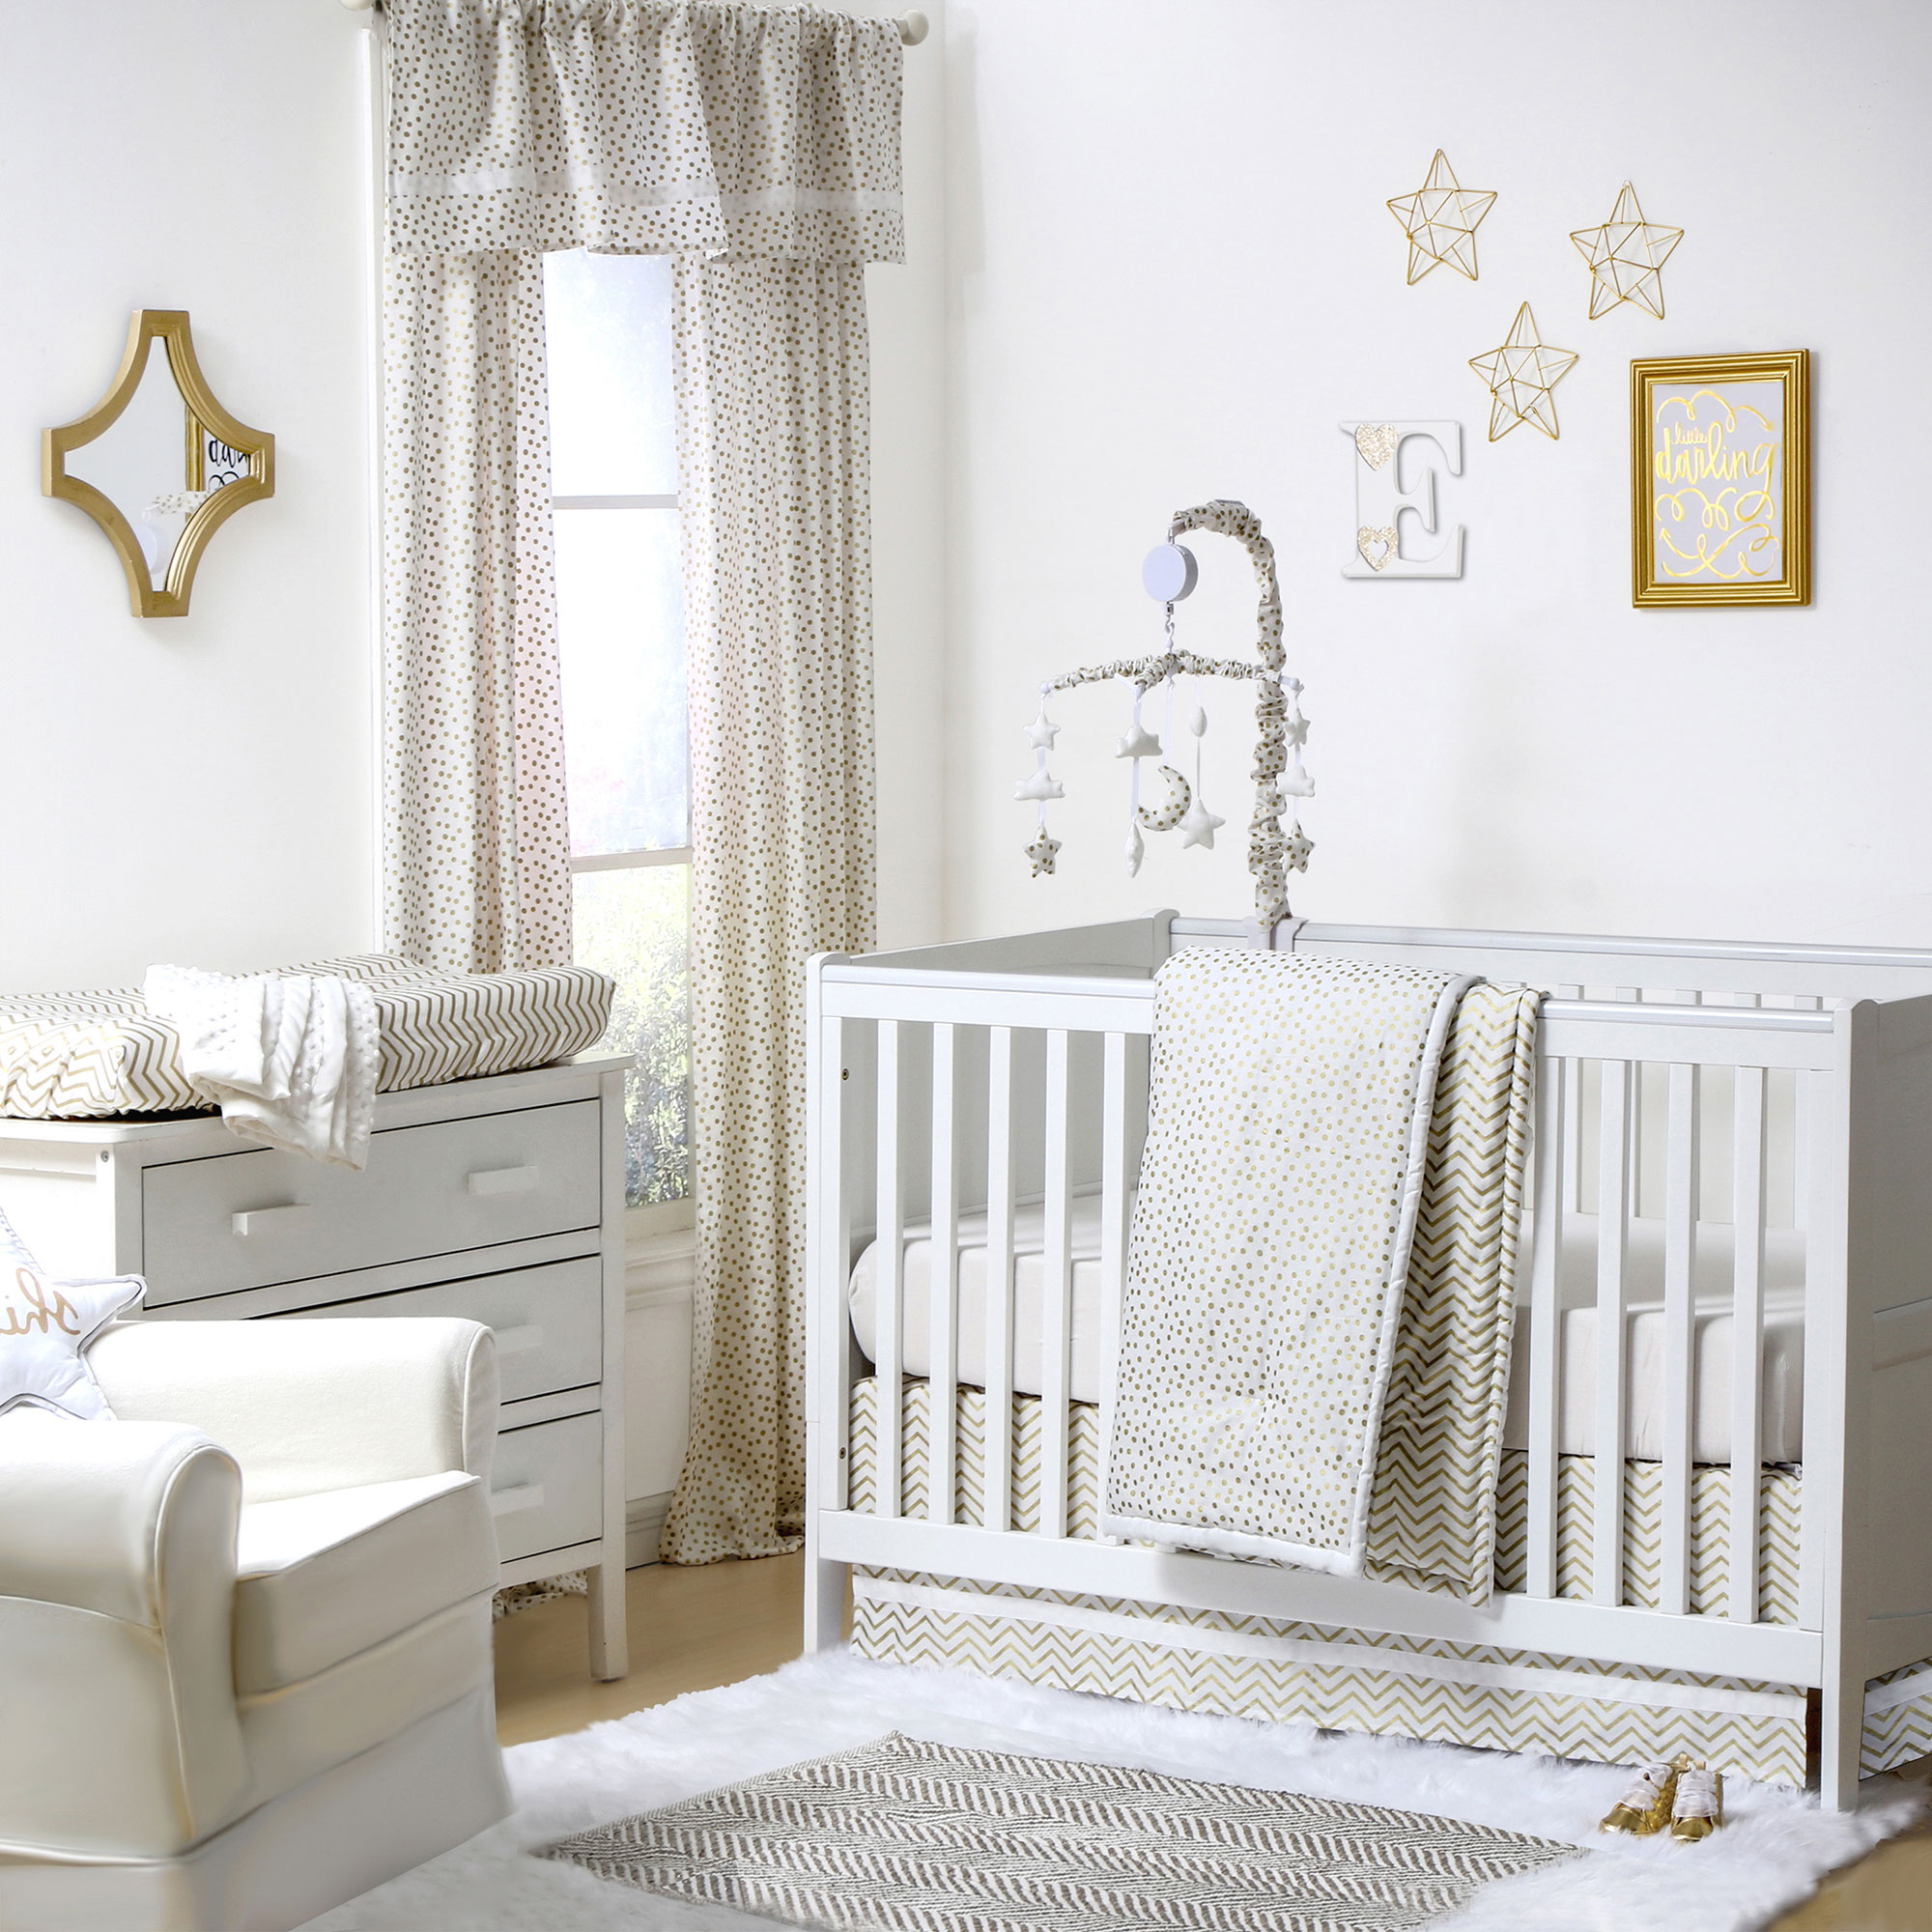 The Peanut Shell 4 Piece Baby Girl Crib Bedding Set - Gold Zig Zag and Polka Dot Prints - 100% Cotton Quilt, Dust Ruffle, Fitted Sheet, and Mobile